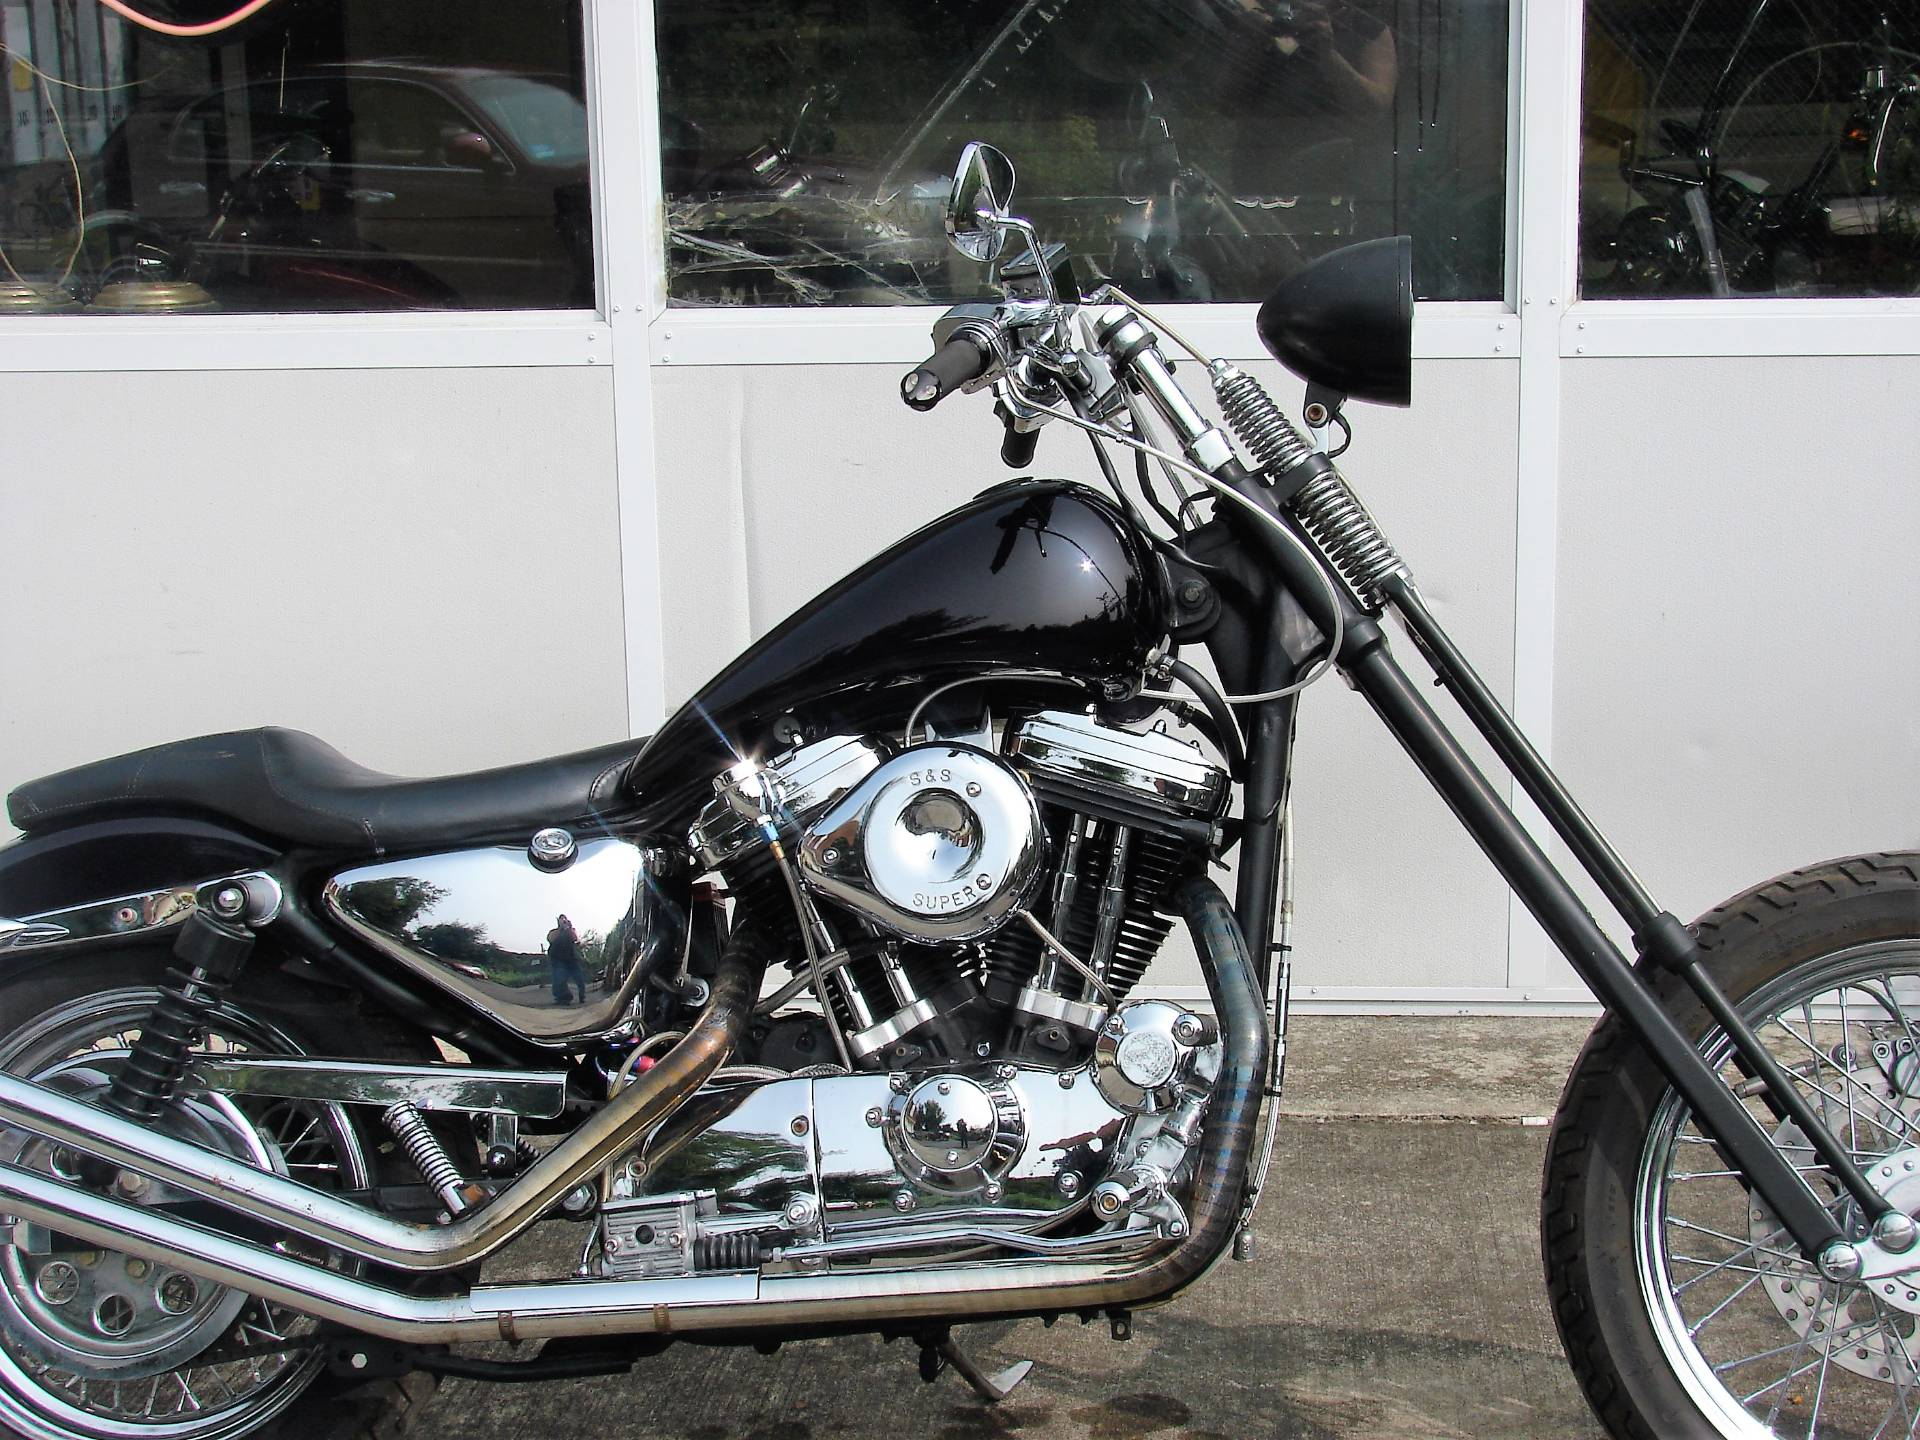 1995 Harley-Davidson XL 1200 Sportster (Conversion) in Williamstown, New Jersey - Photo 2